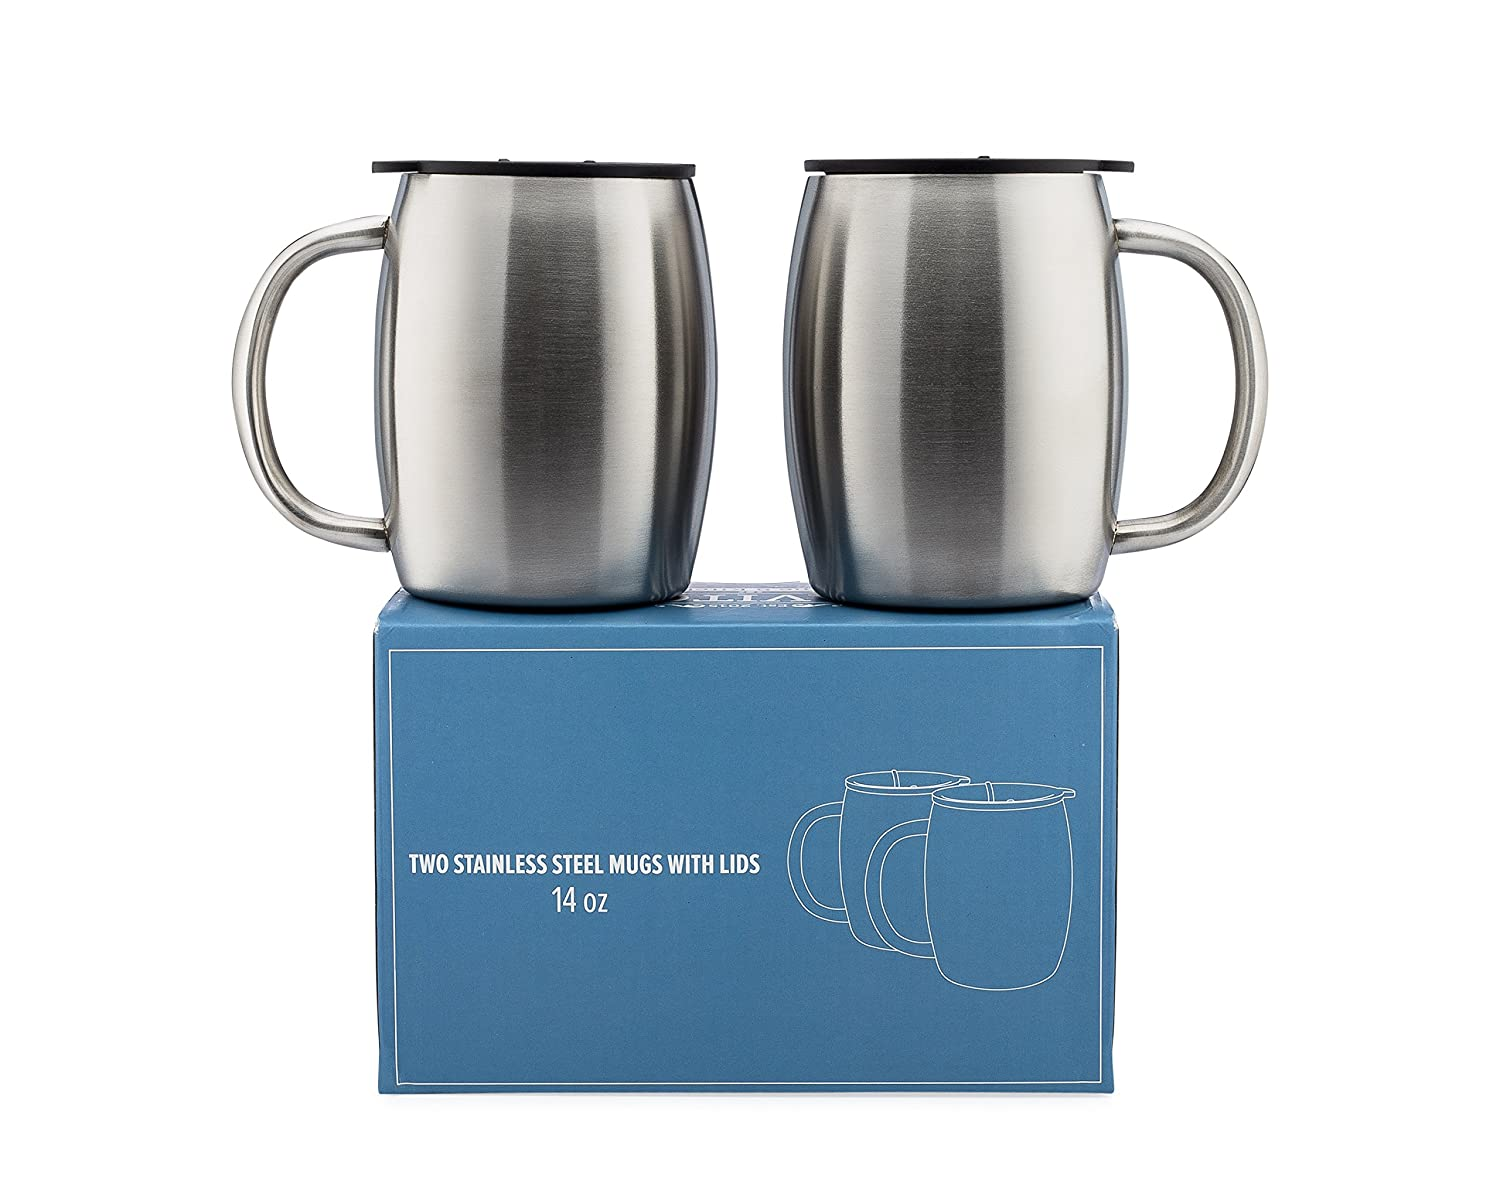 Stainless Steel Coffee Mugs with Lids - 14 Oz Double Walled Insulated Coffee Beer Mugs - Set of 2 by Avito - Best Value - BPA Free Healthy Choice - Shatterproof and Spill Resistant